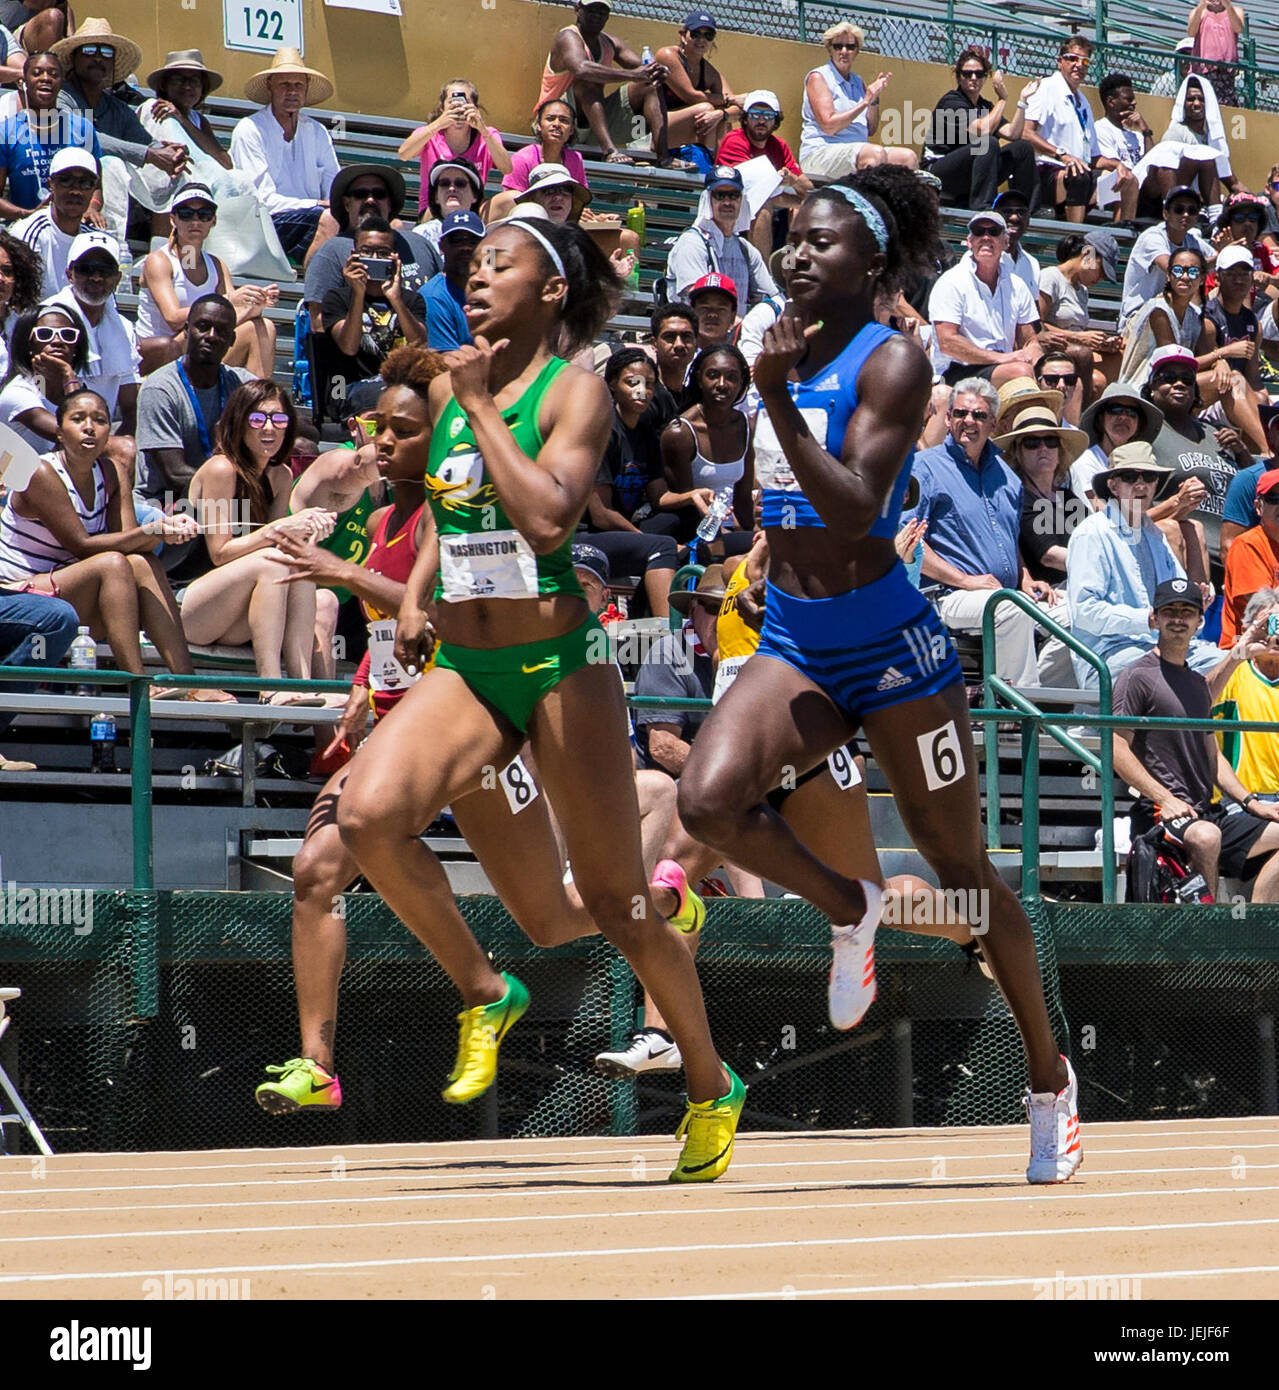 Sacramento, CA. 25th June, 2017. Women's 200m heat 1 top 3 first place Kimberly Duncan 22.59, 2nd place Allyson - Stock Image